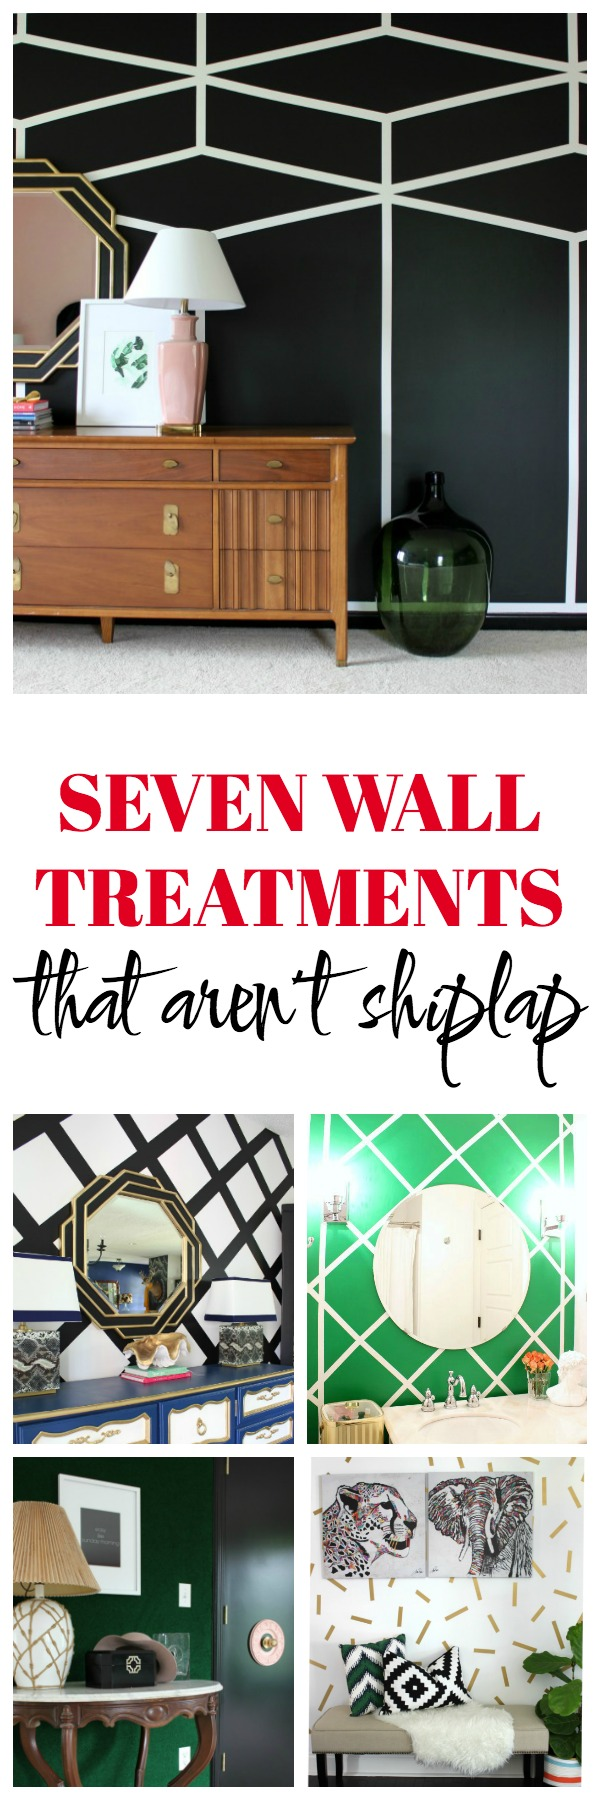 Looking to create an accent wall or feature wall that doesn't include shiplap? This post about 7 wall treatments that aren't shiplap is for you then!